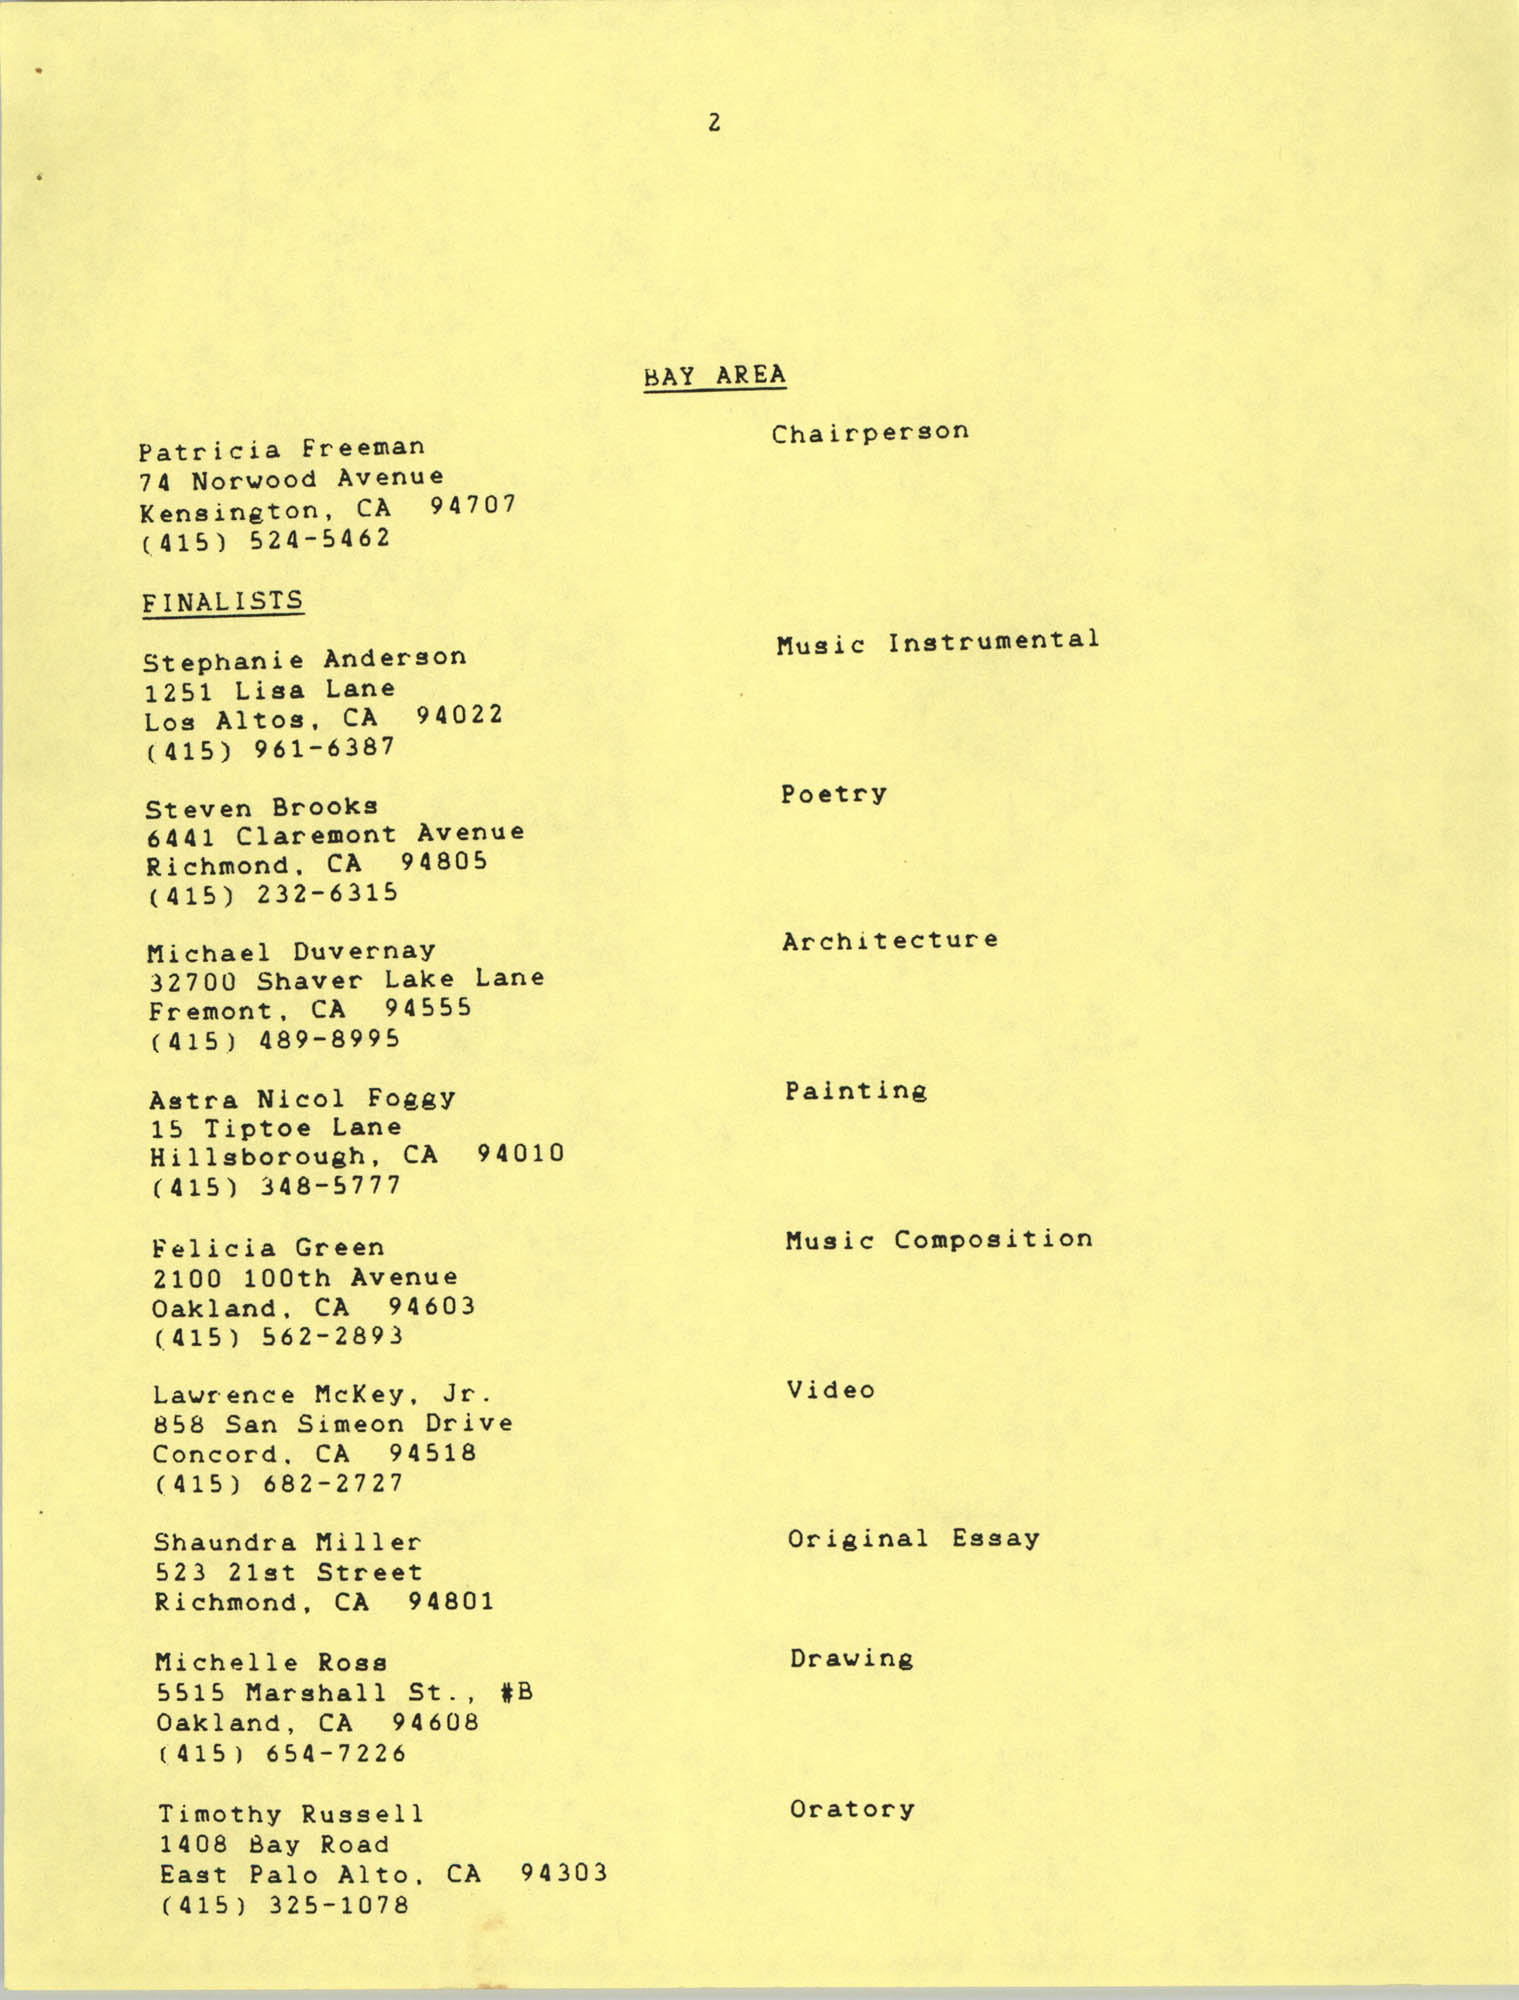 1987 Act-So Contestants, NAACP West Coast Region, Page 2